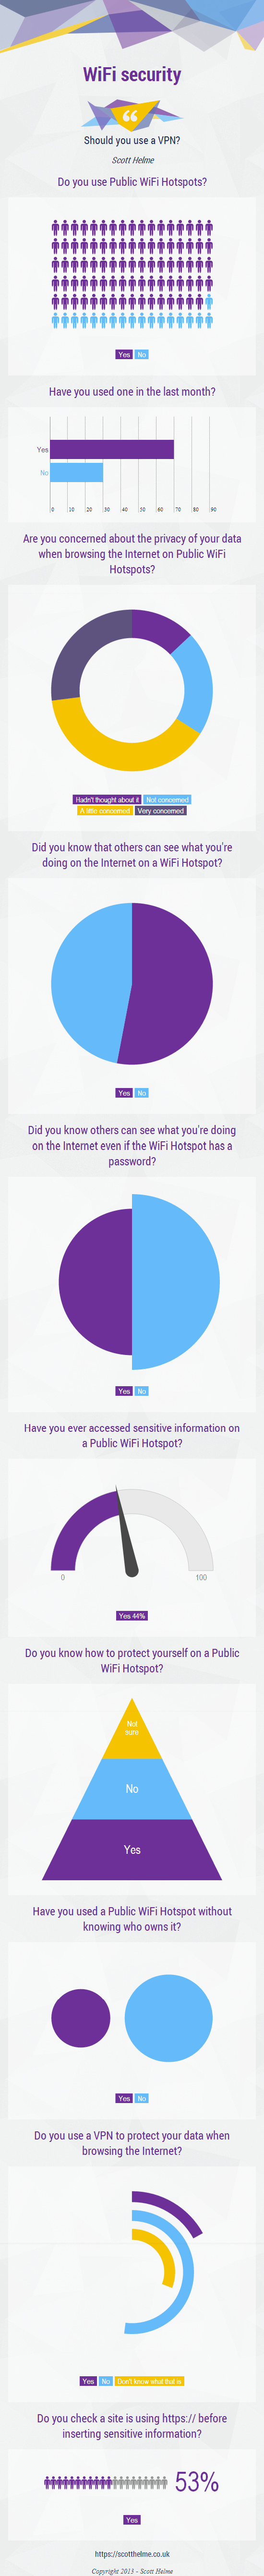 The results of my survey of 100 people regarding WiFi Security.